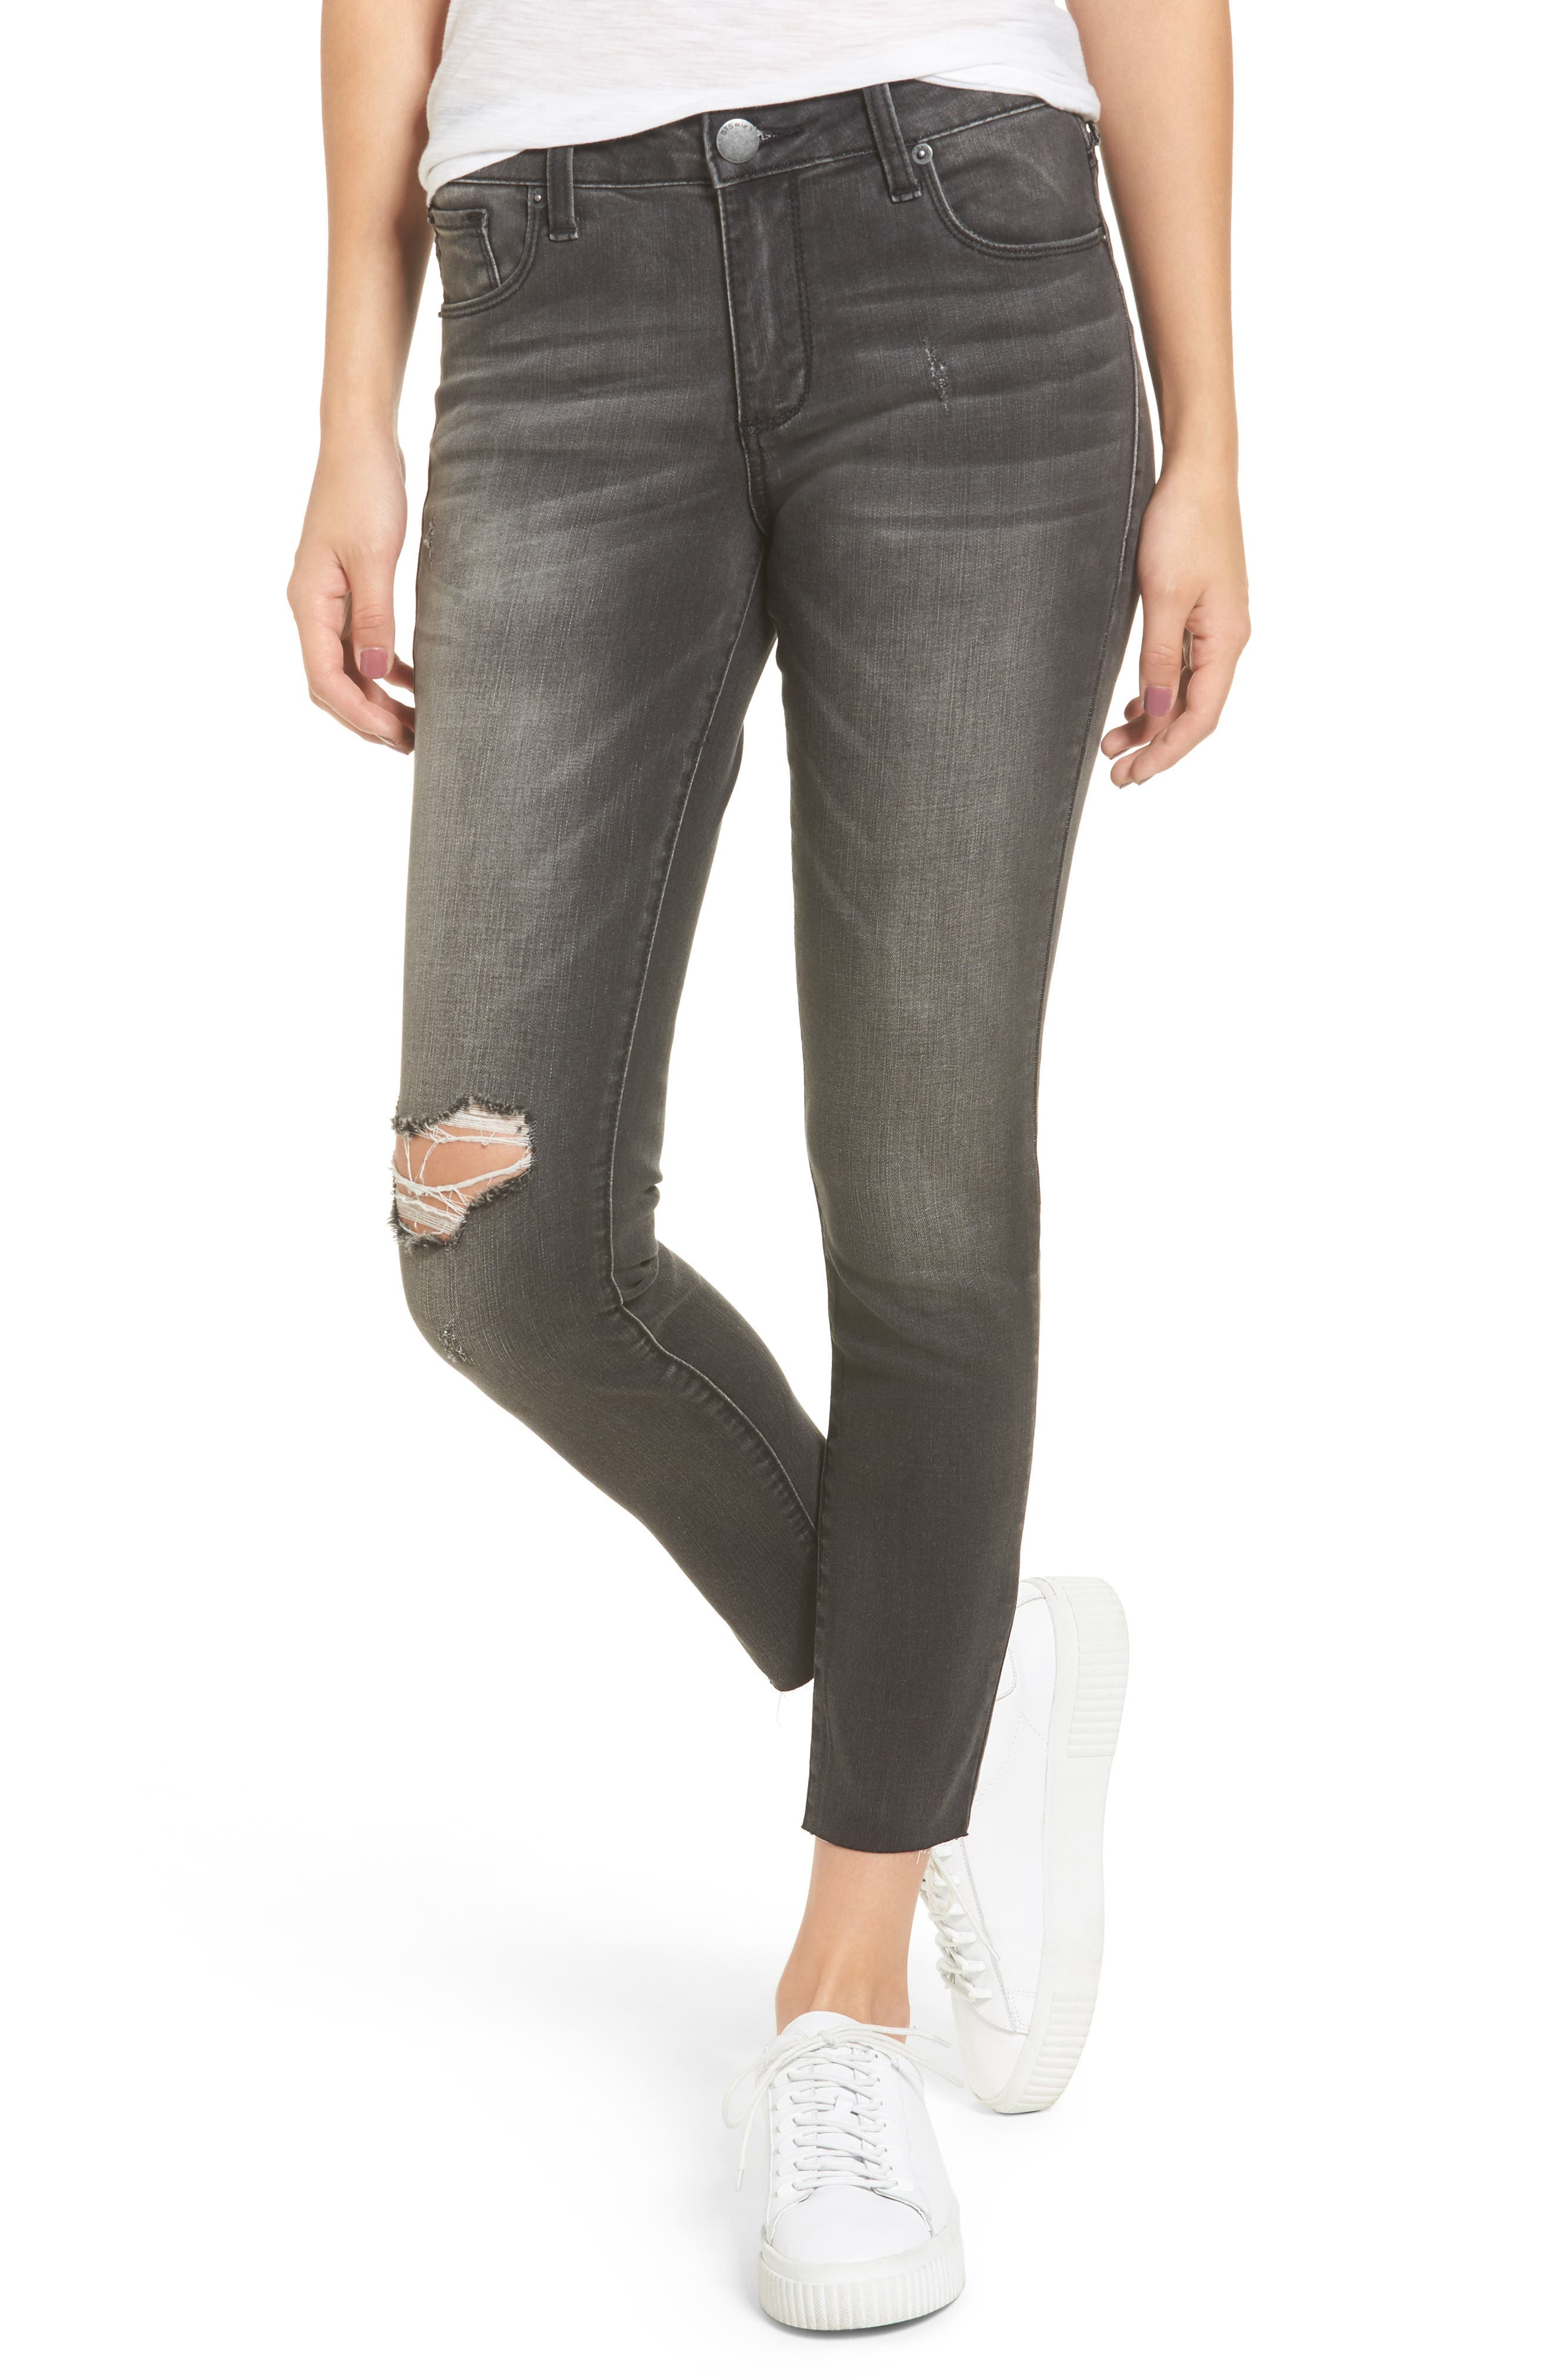 STS Emma Ripped Crop Skinny Jeans,                         Main,                         color, 001